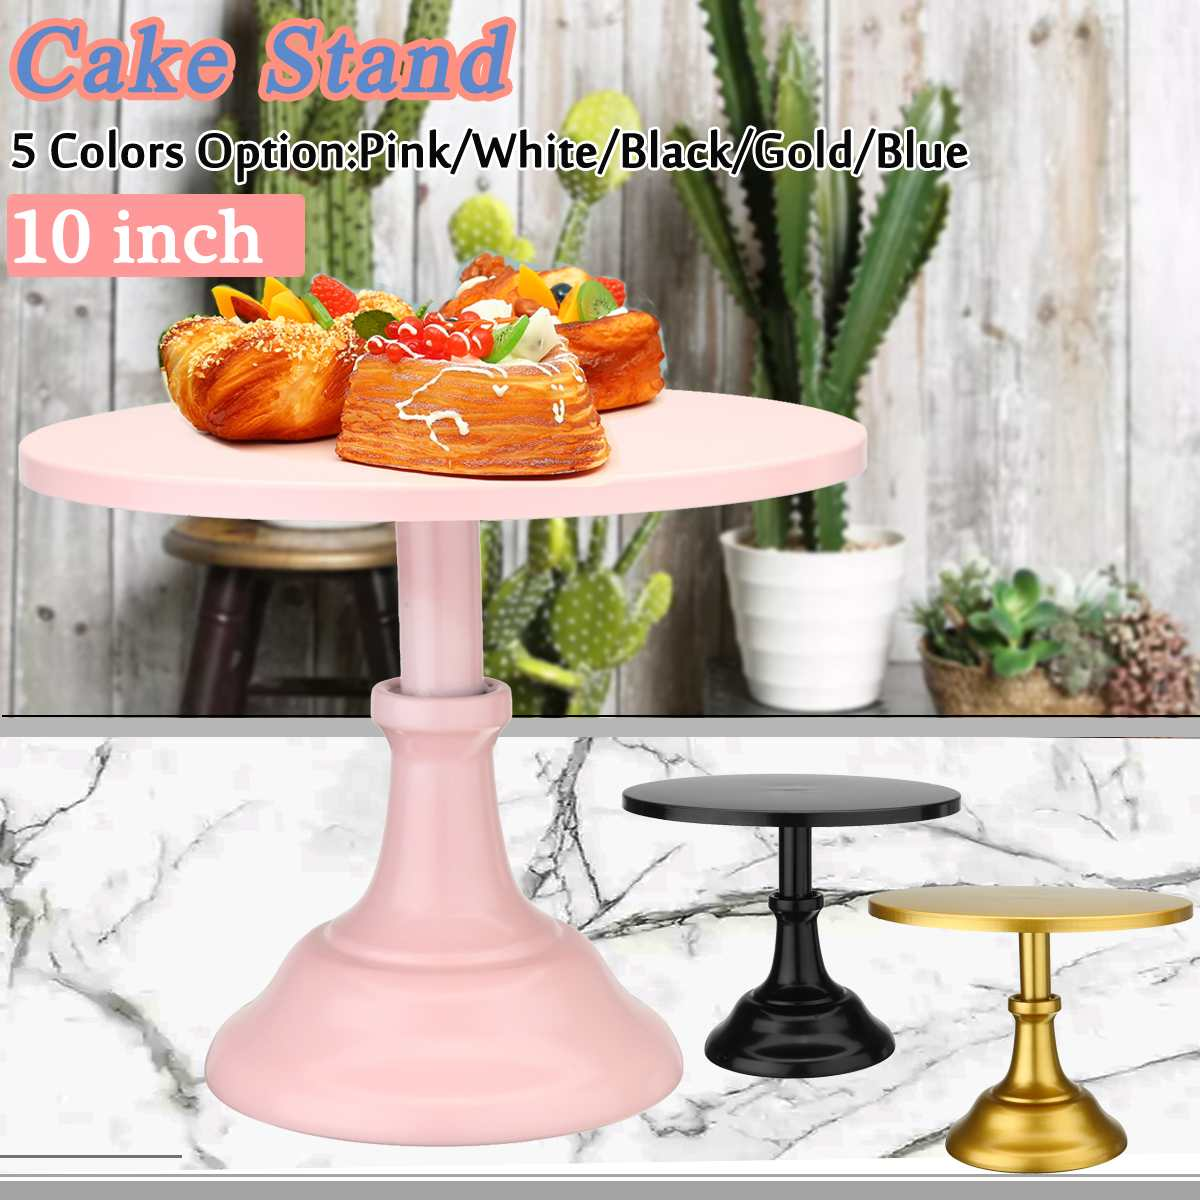 10 inch 5 Colors Grand baker cake stand wedding cake tools adjustable height fondant cake display accessory for party bakeware